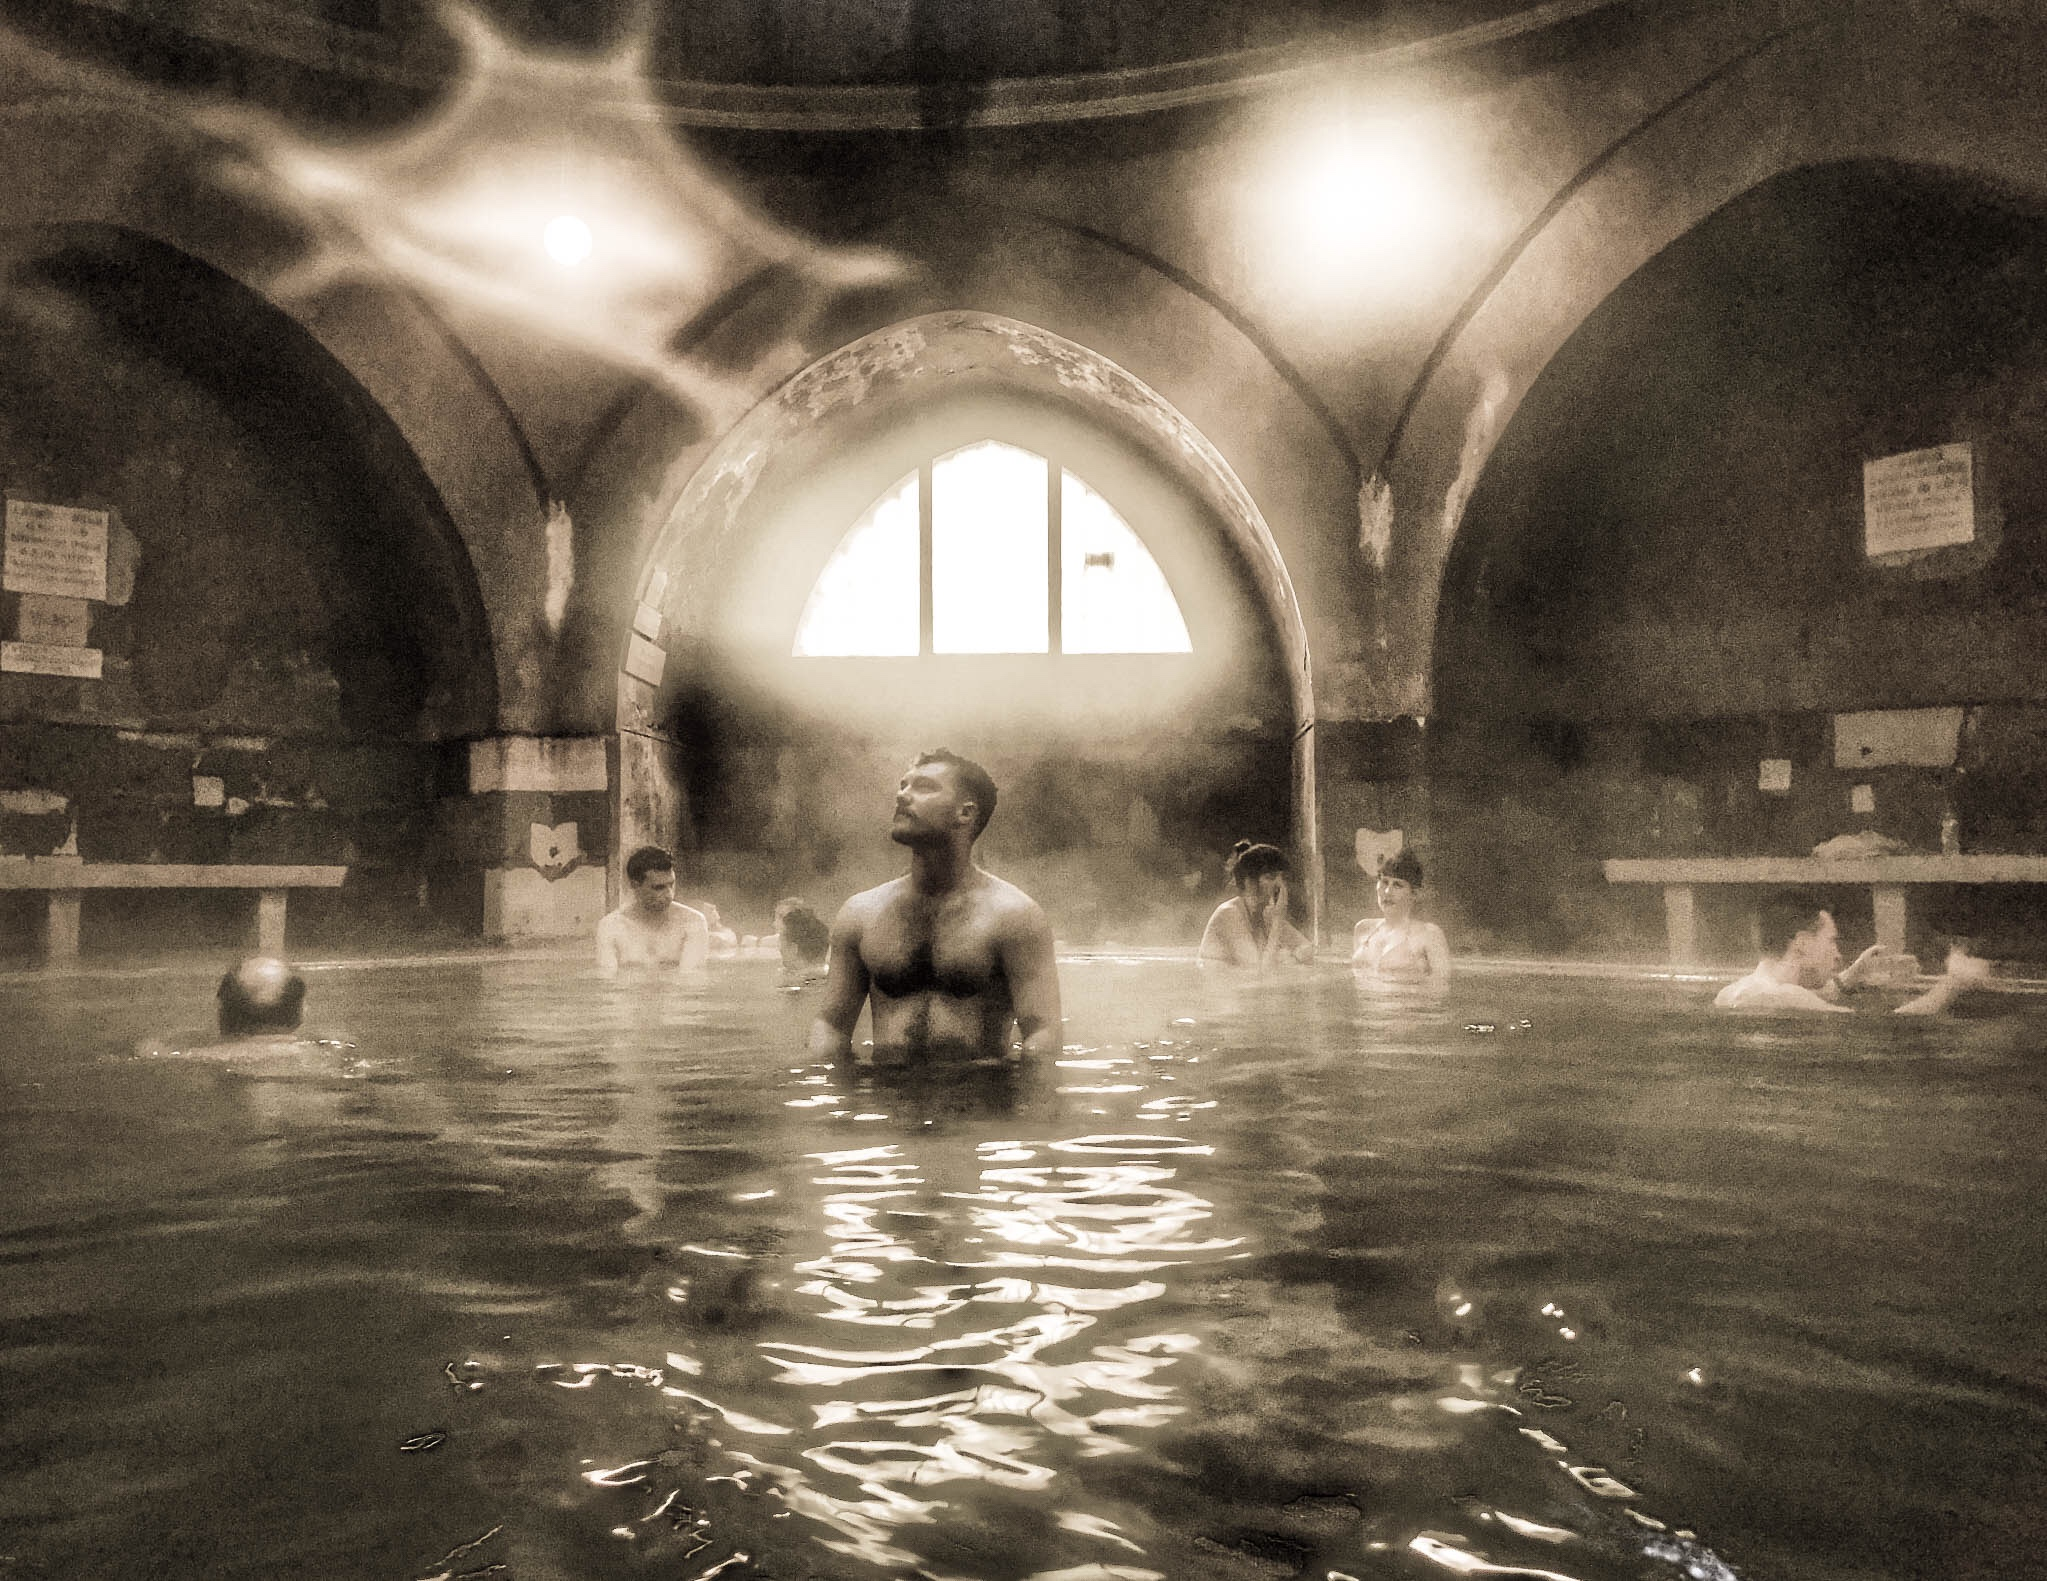 The Bathhouses of Budapest